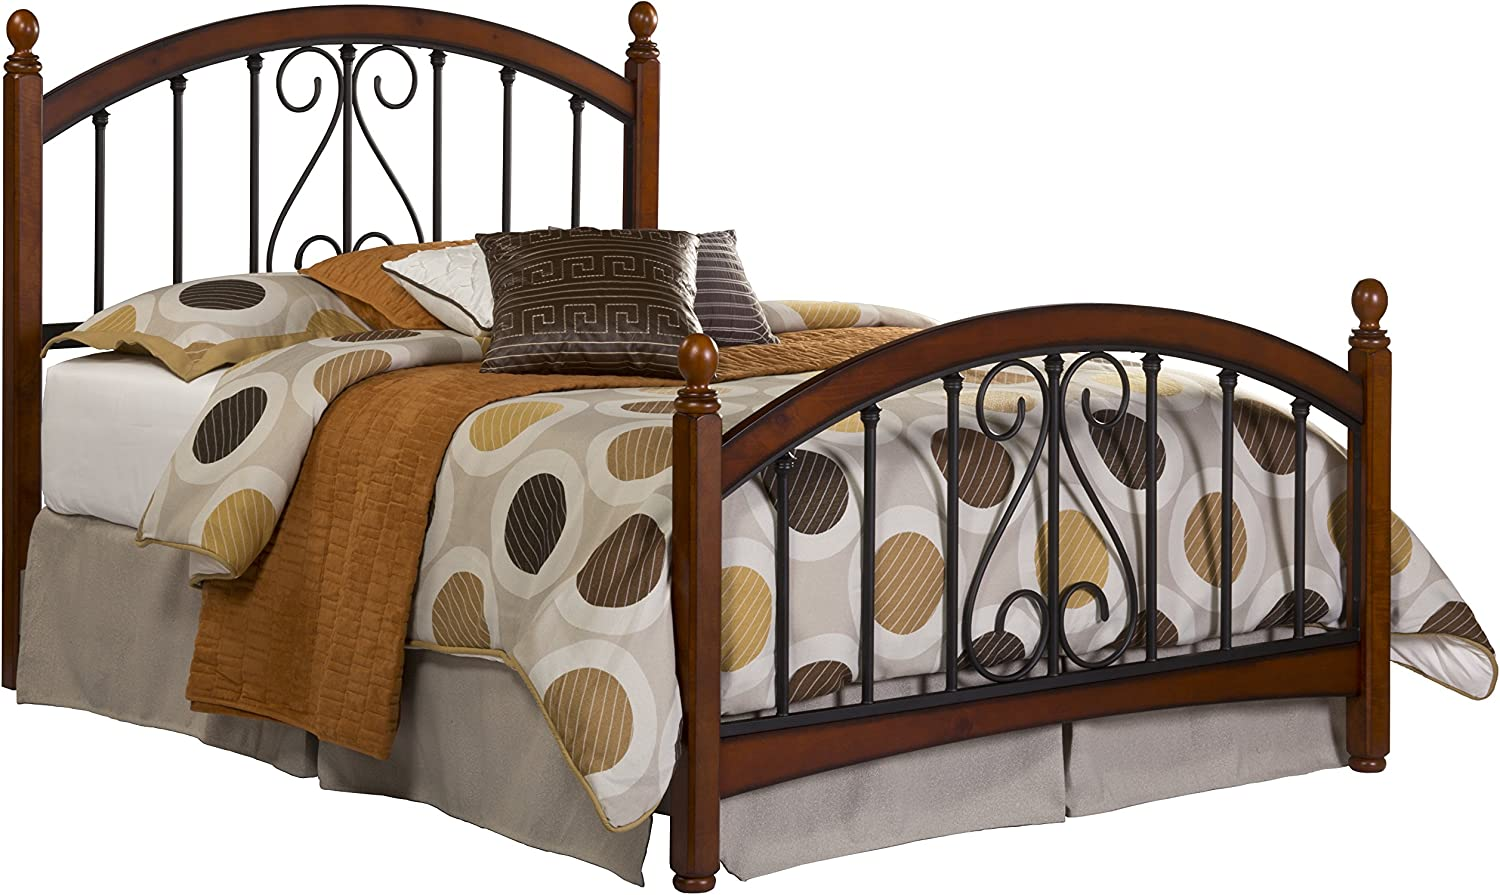 Hillsdale Furniture Hillsdale Burton Way Queen Bed, Cherry